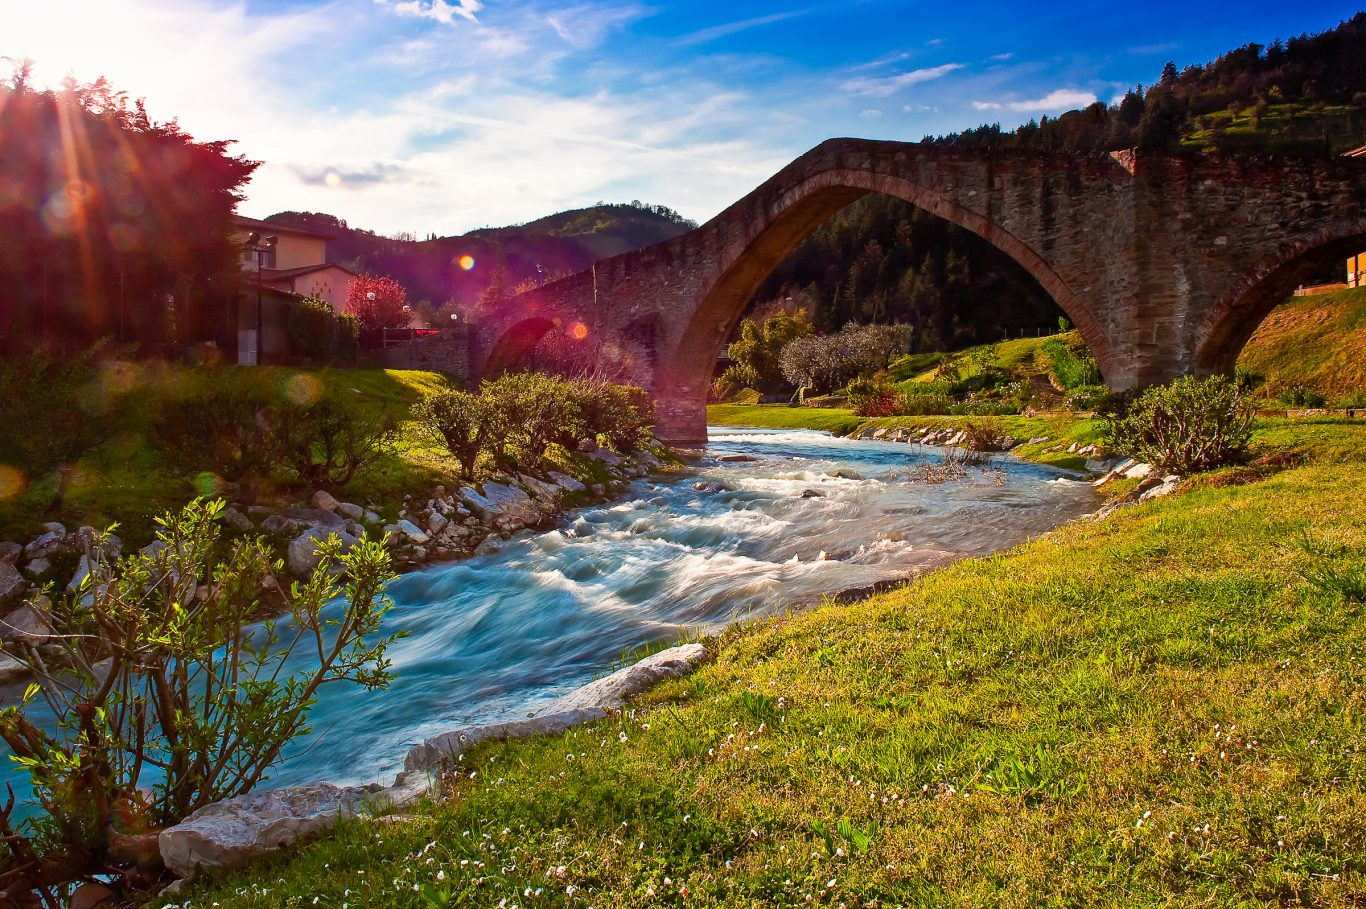 Italians want to encourage visiotrs to visit lesser-known destinations